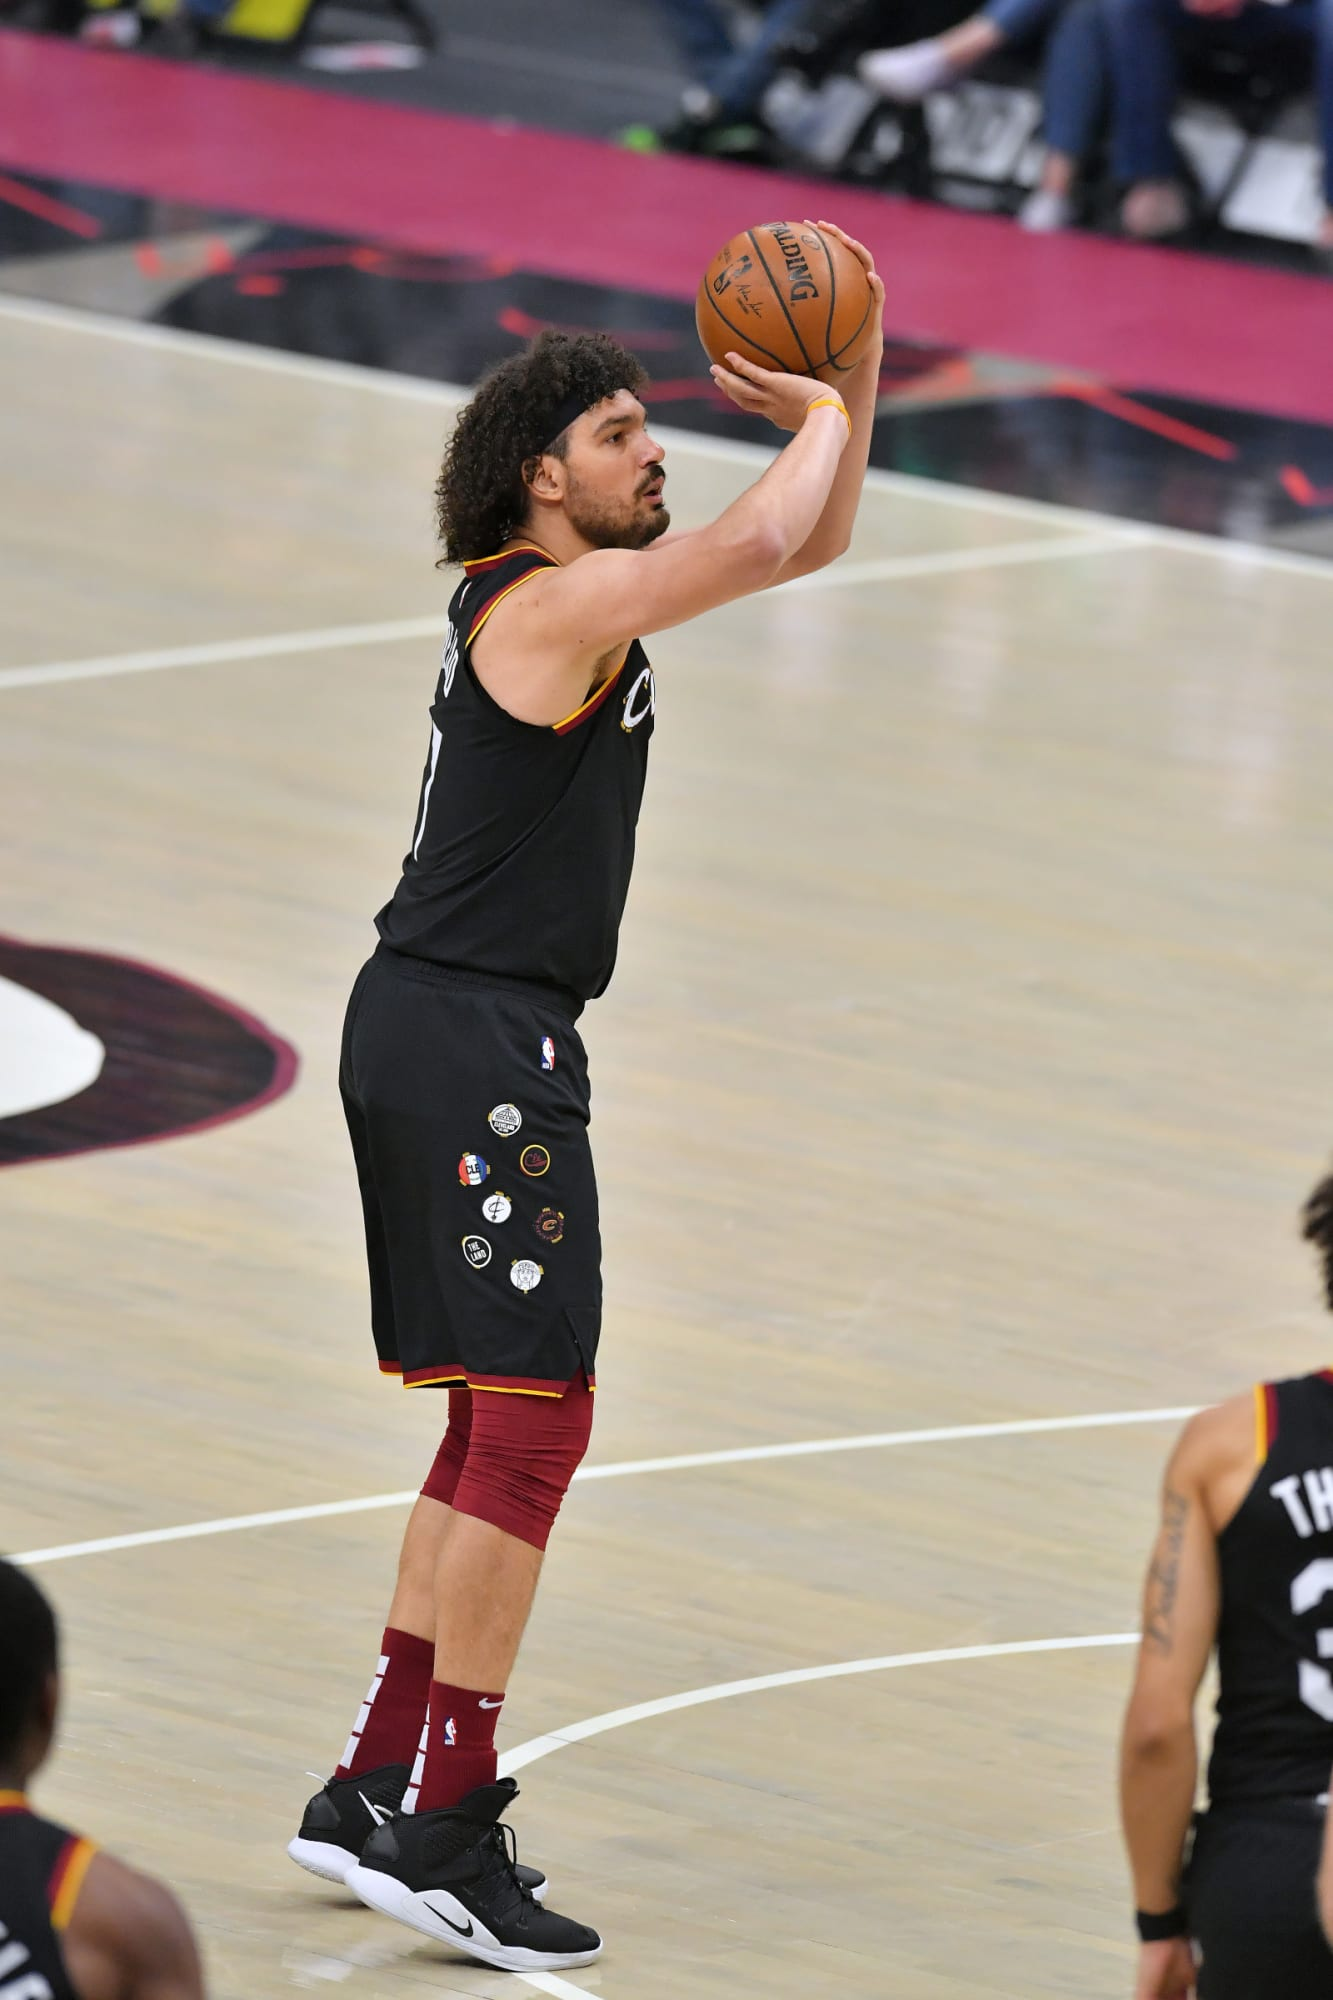 Cavs: Anderson Varejao could get decent PT to end out